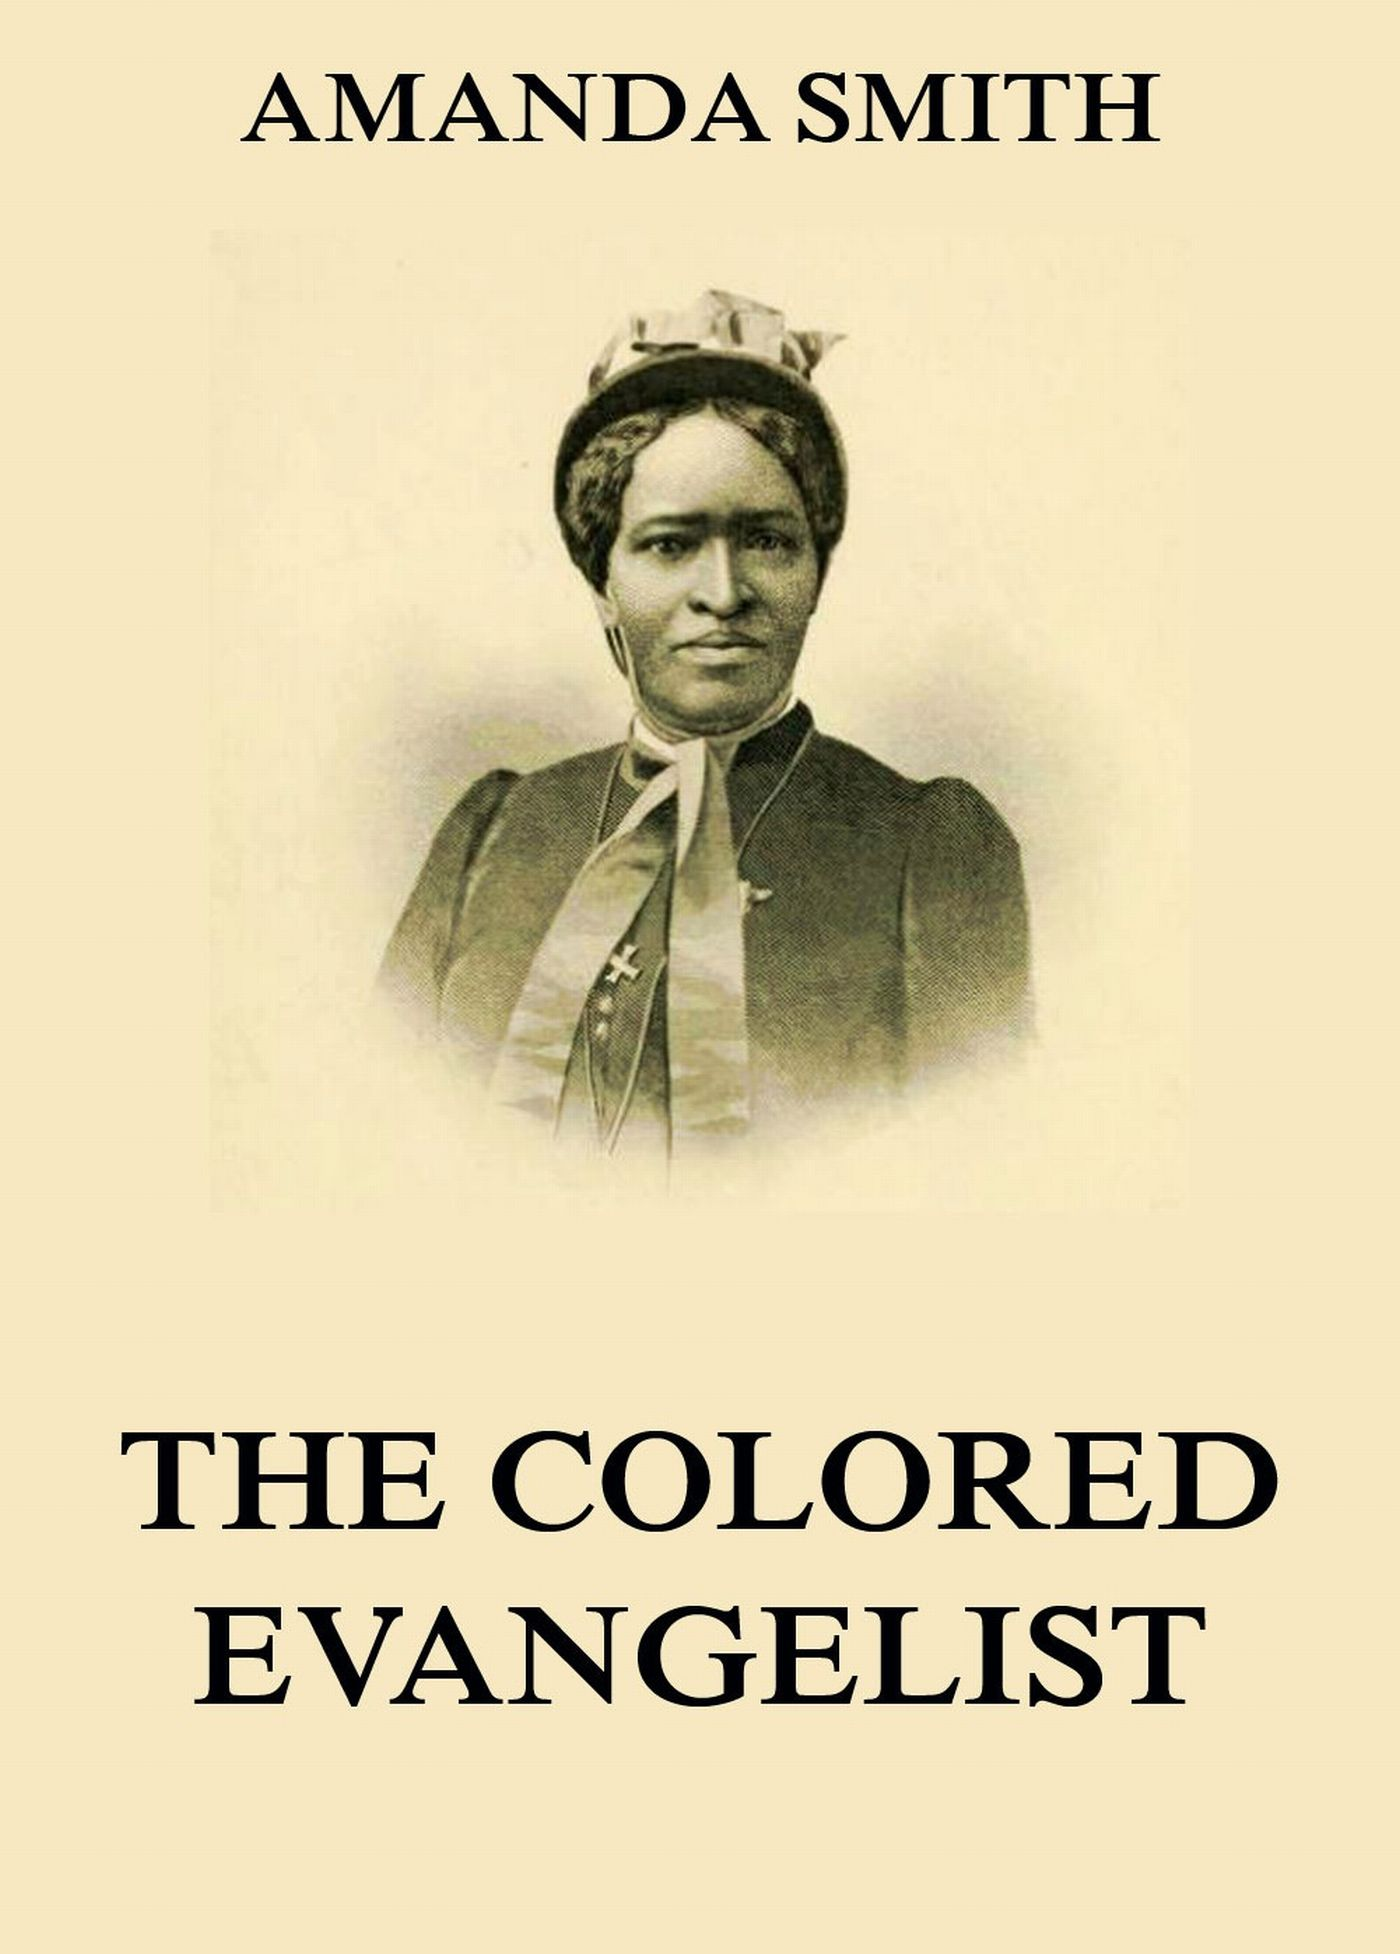 Amanda Smith The Colored Evangelist - The Story Of The Lord's Dealings With Mrs. Amanda Smith amanda